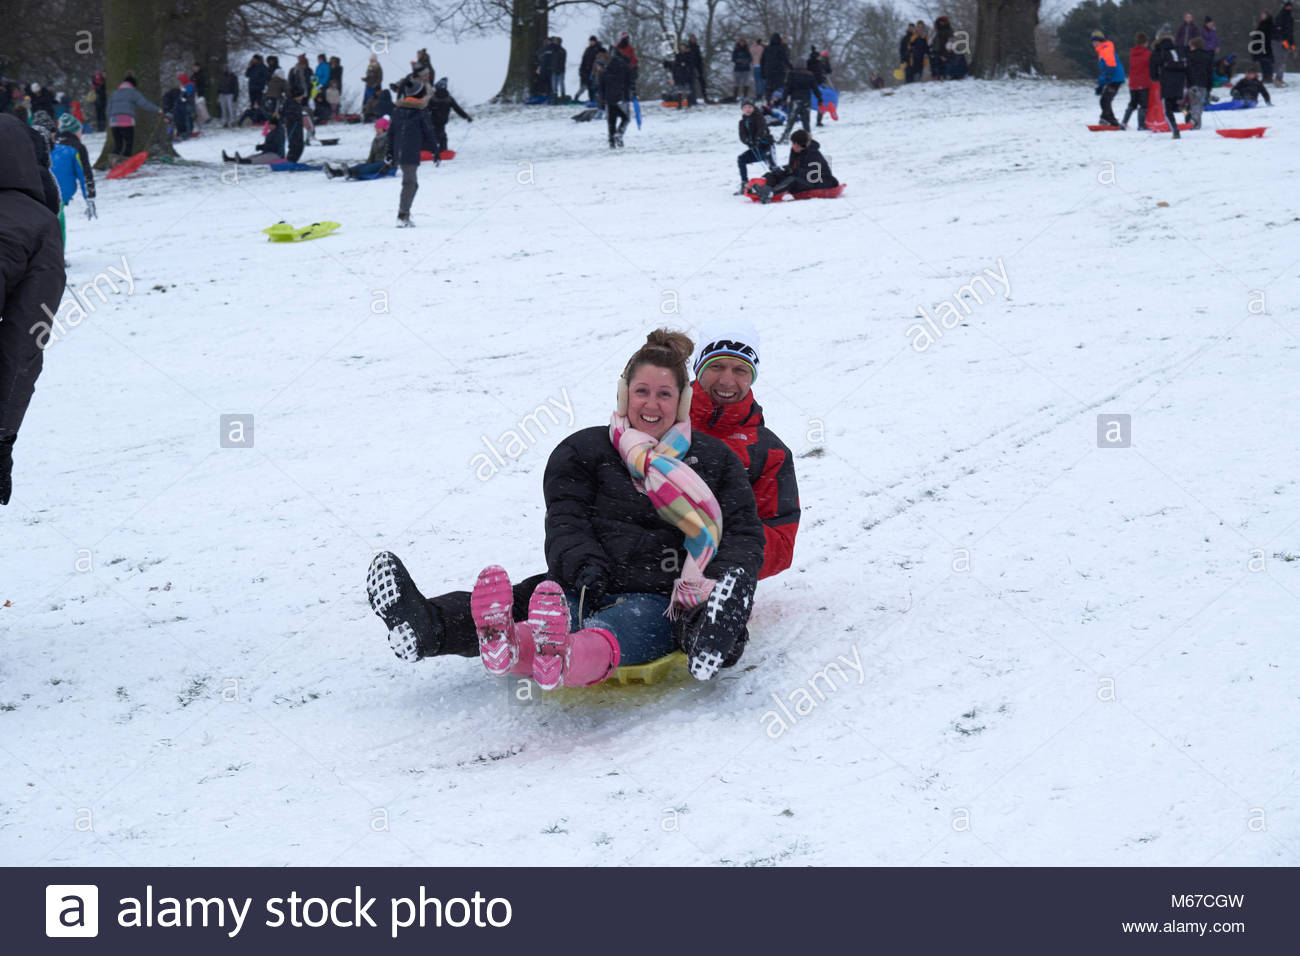 Nottingham, England, 1 March 2018 Sledging in front of Wollaton Hall in snow from 'The Beast from the East' - Stock Image